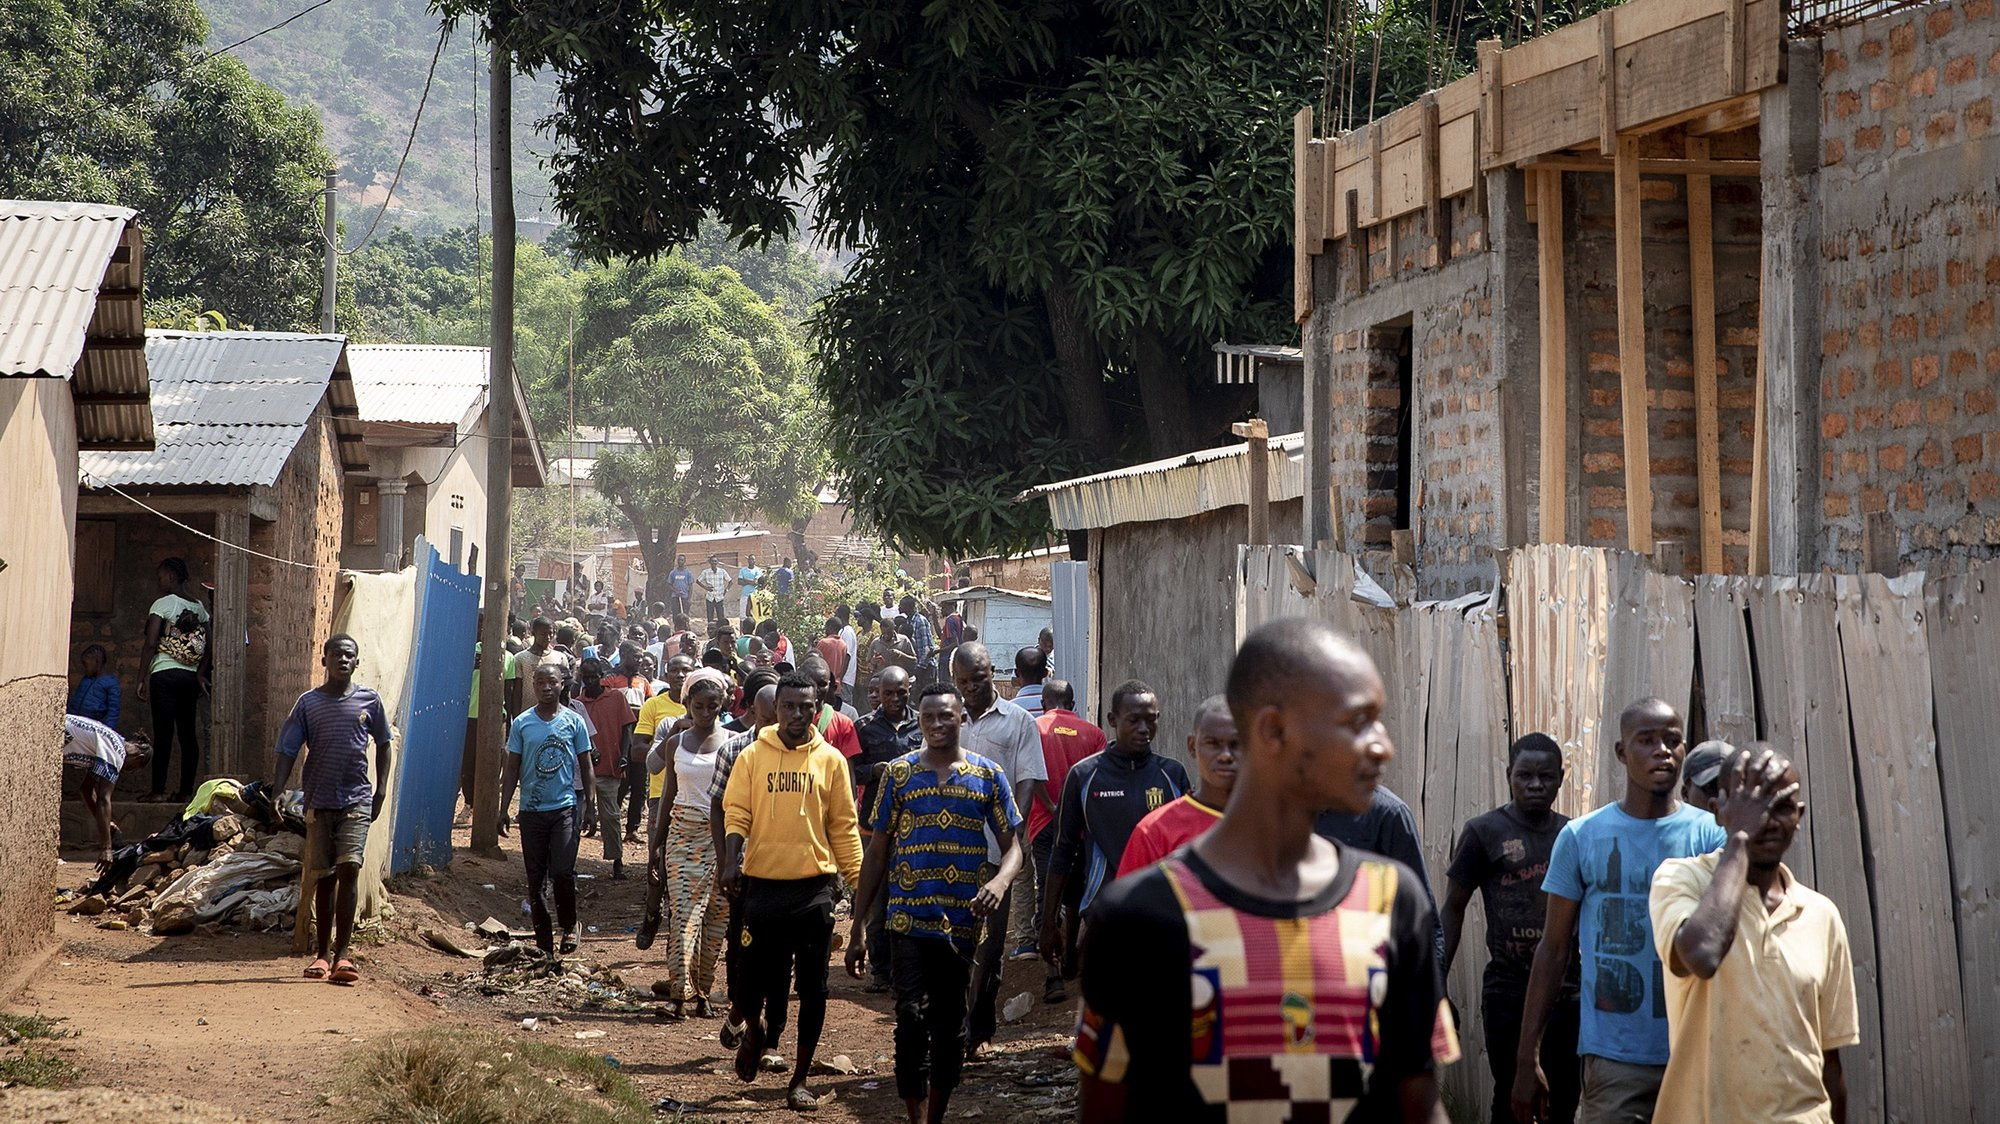 epa08934878 Central Africans walk in the neighborhood during a respite from fighting where at approximately 6 am a couple hundred rebel fighters attacked and faced Central African Forces and the UN MINUSCA in the capital Bangui at the North entrance of pk12, the Central African Republic, 13 January 2021.  According to Prime Minister Firmin Ngrebada rebel attackers came in large numbers to take Bangui but were pushed back. The fighting comes in the wake of the disputed 27 December election where rebel groups have launched attacks on towns outside Bangui and now launched an attack on the capital.  EPA/ADRIENNE SURPRENANT